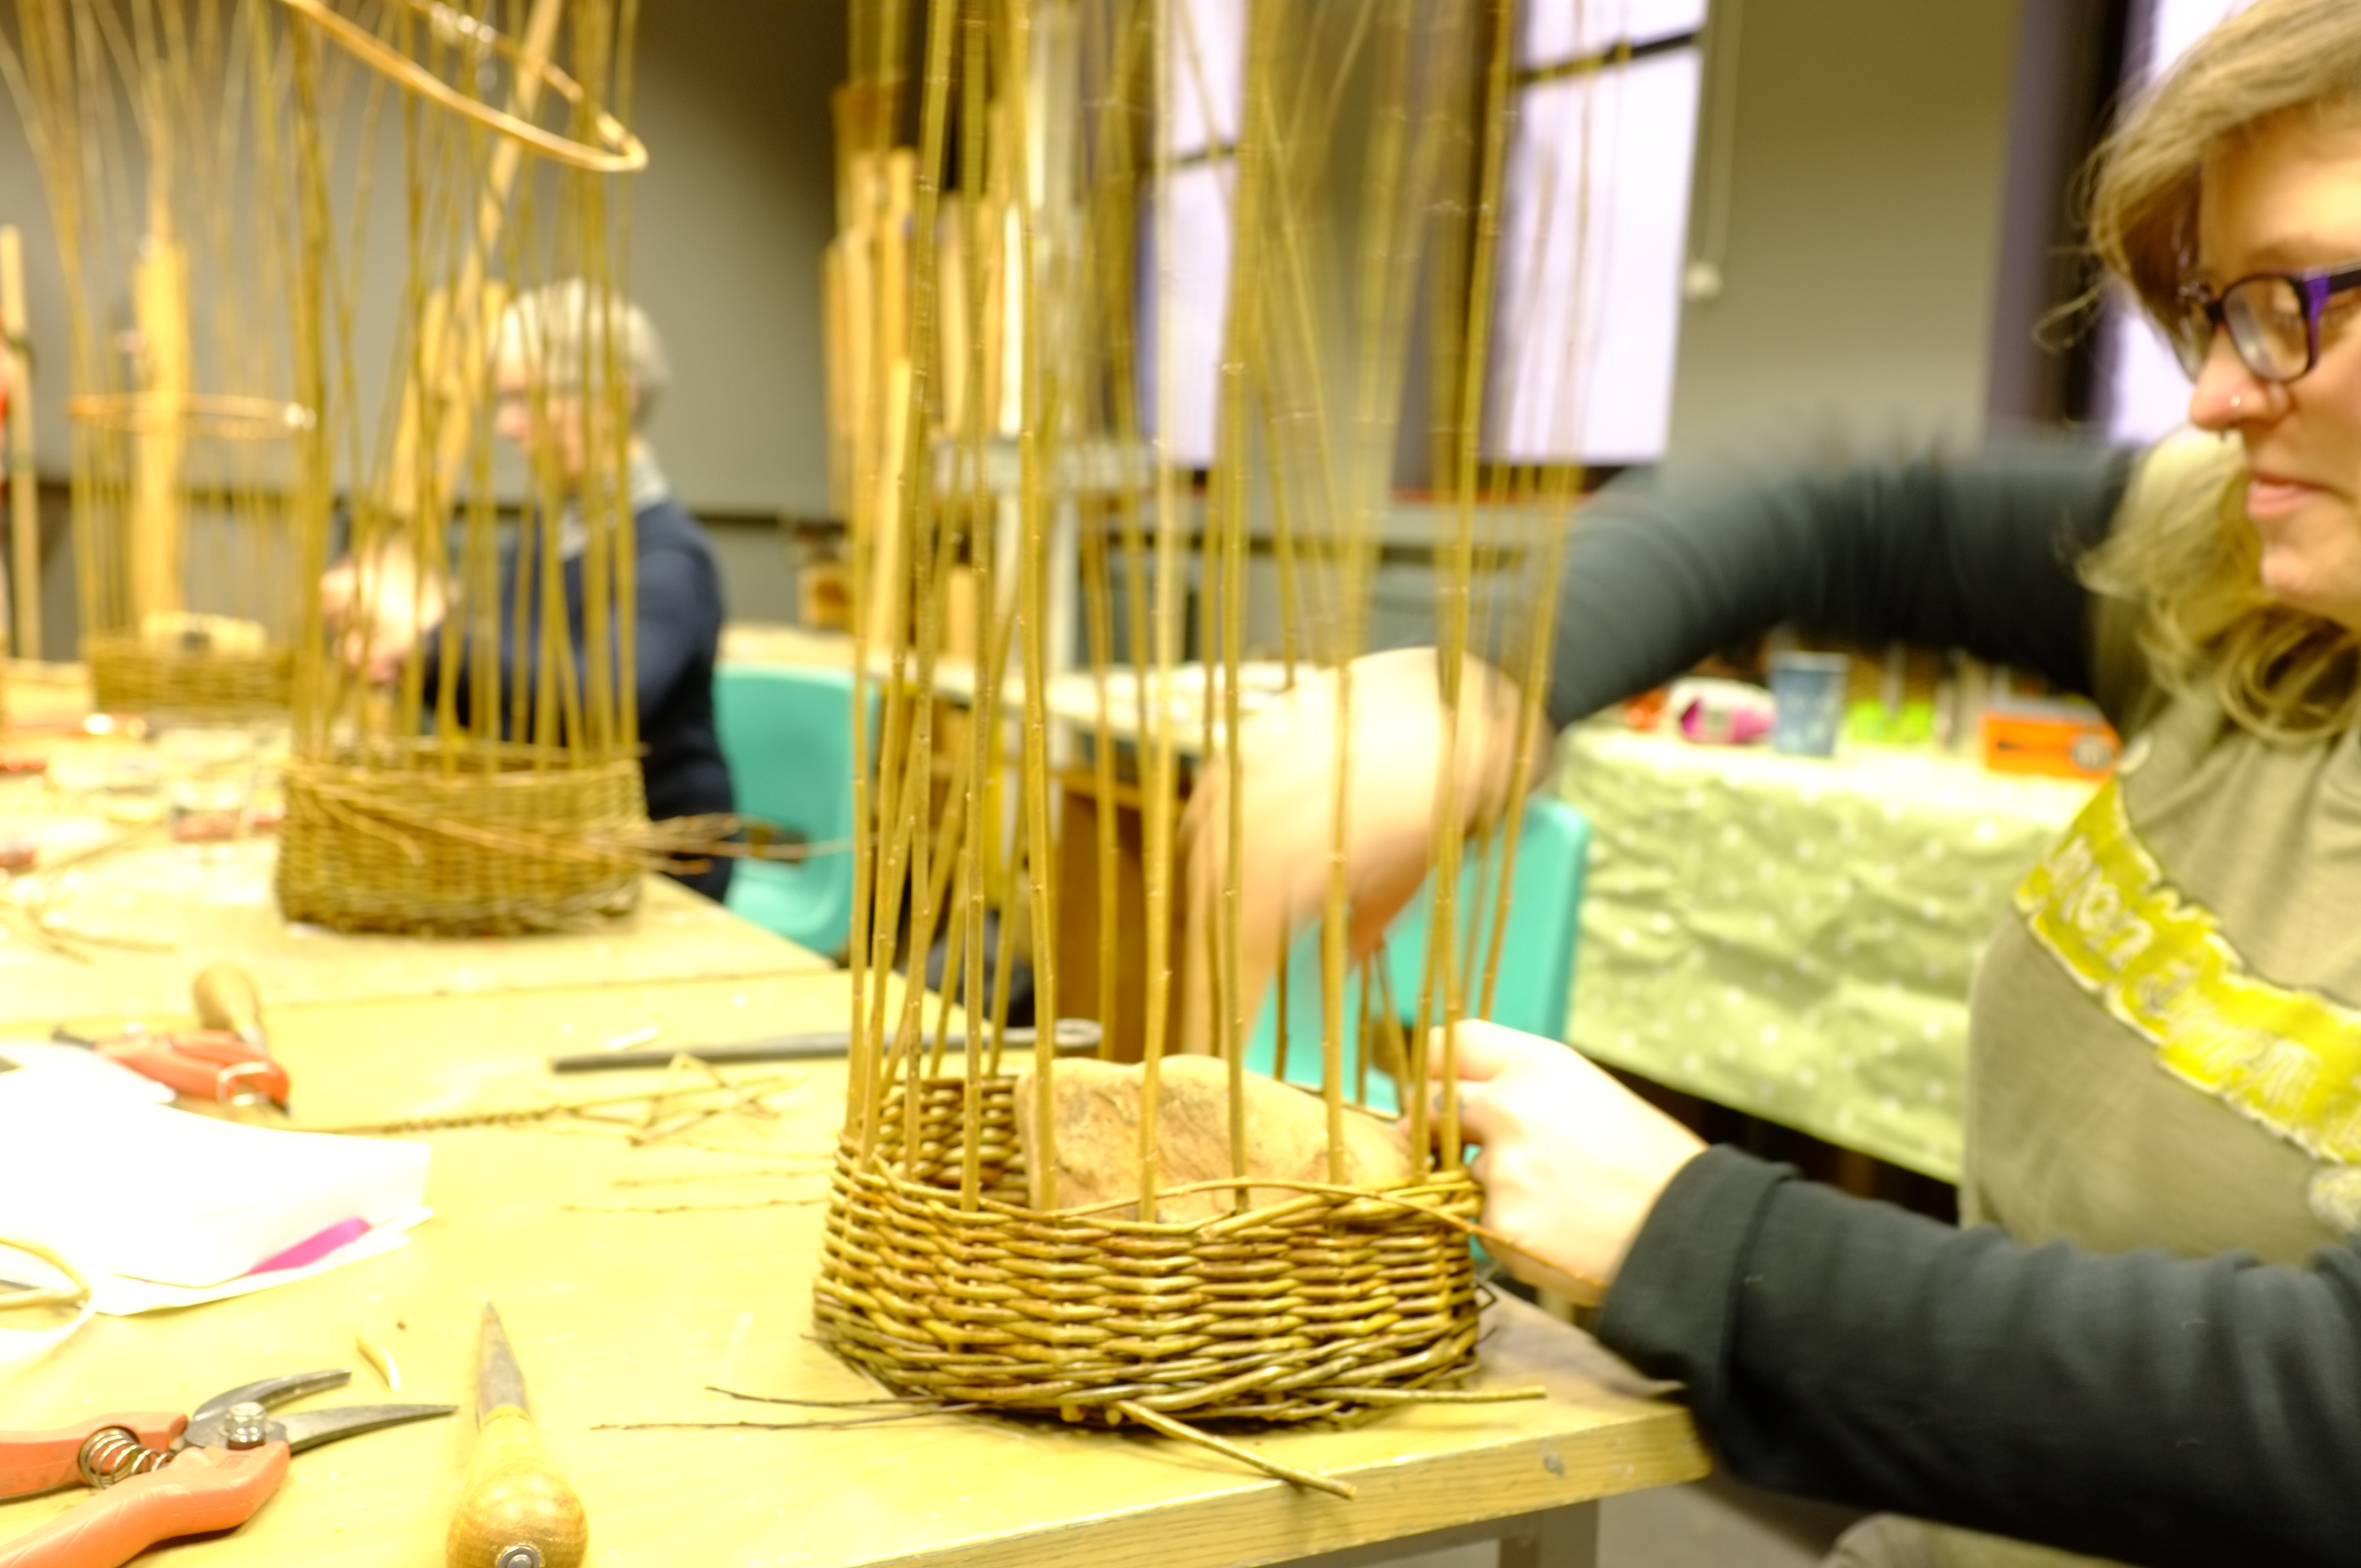 Willow Basketry Course